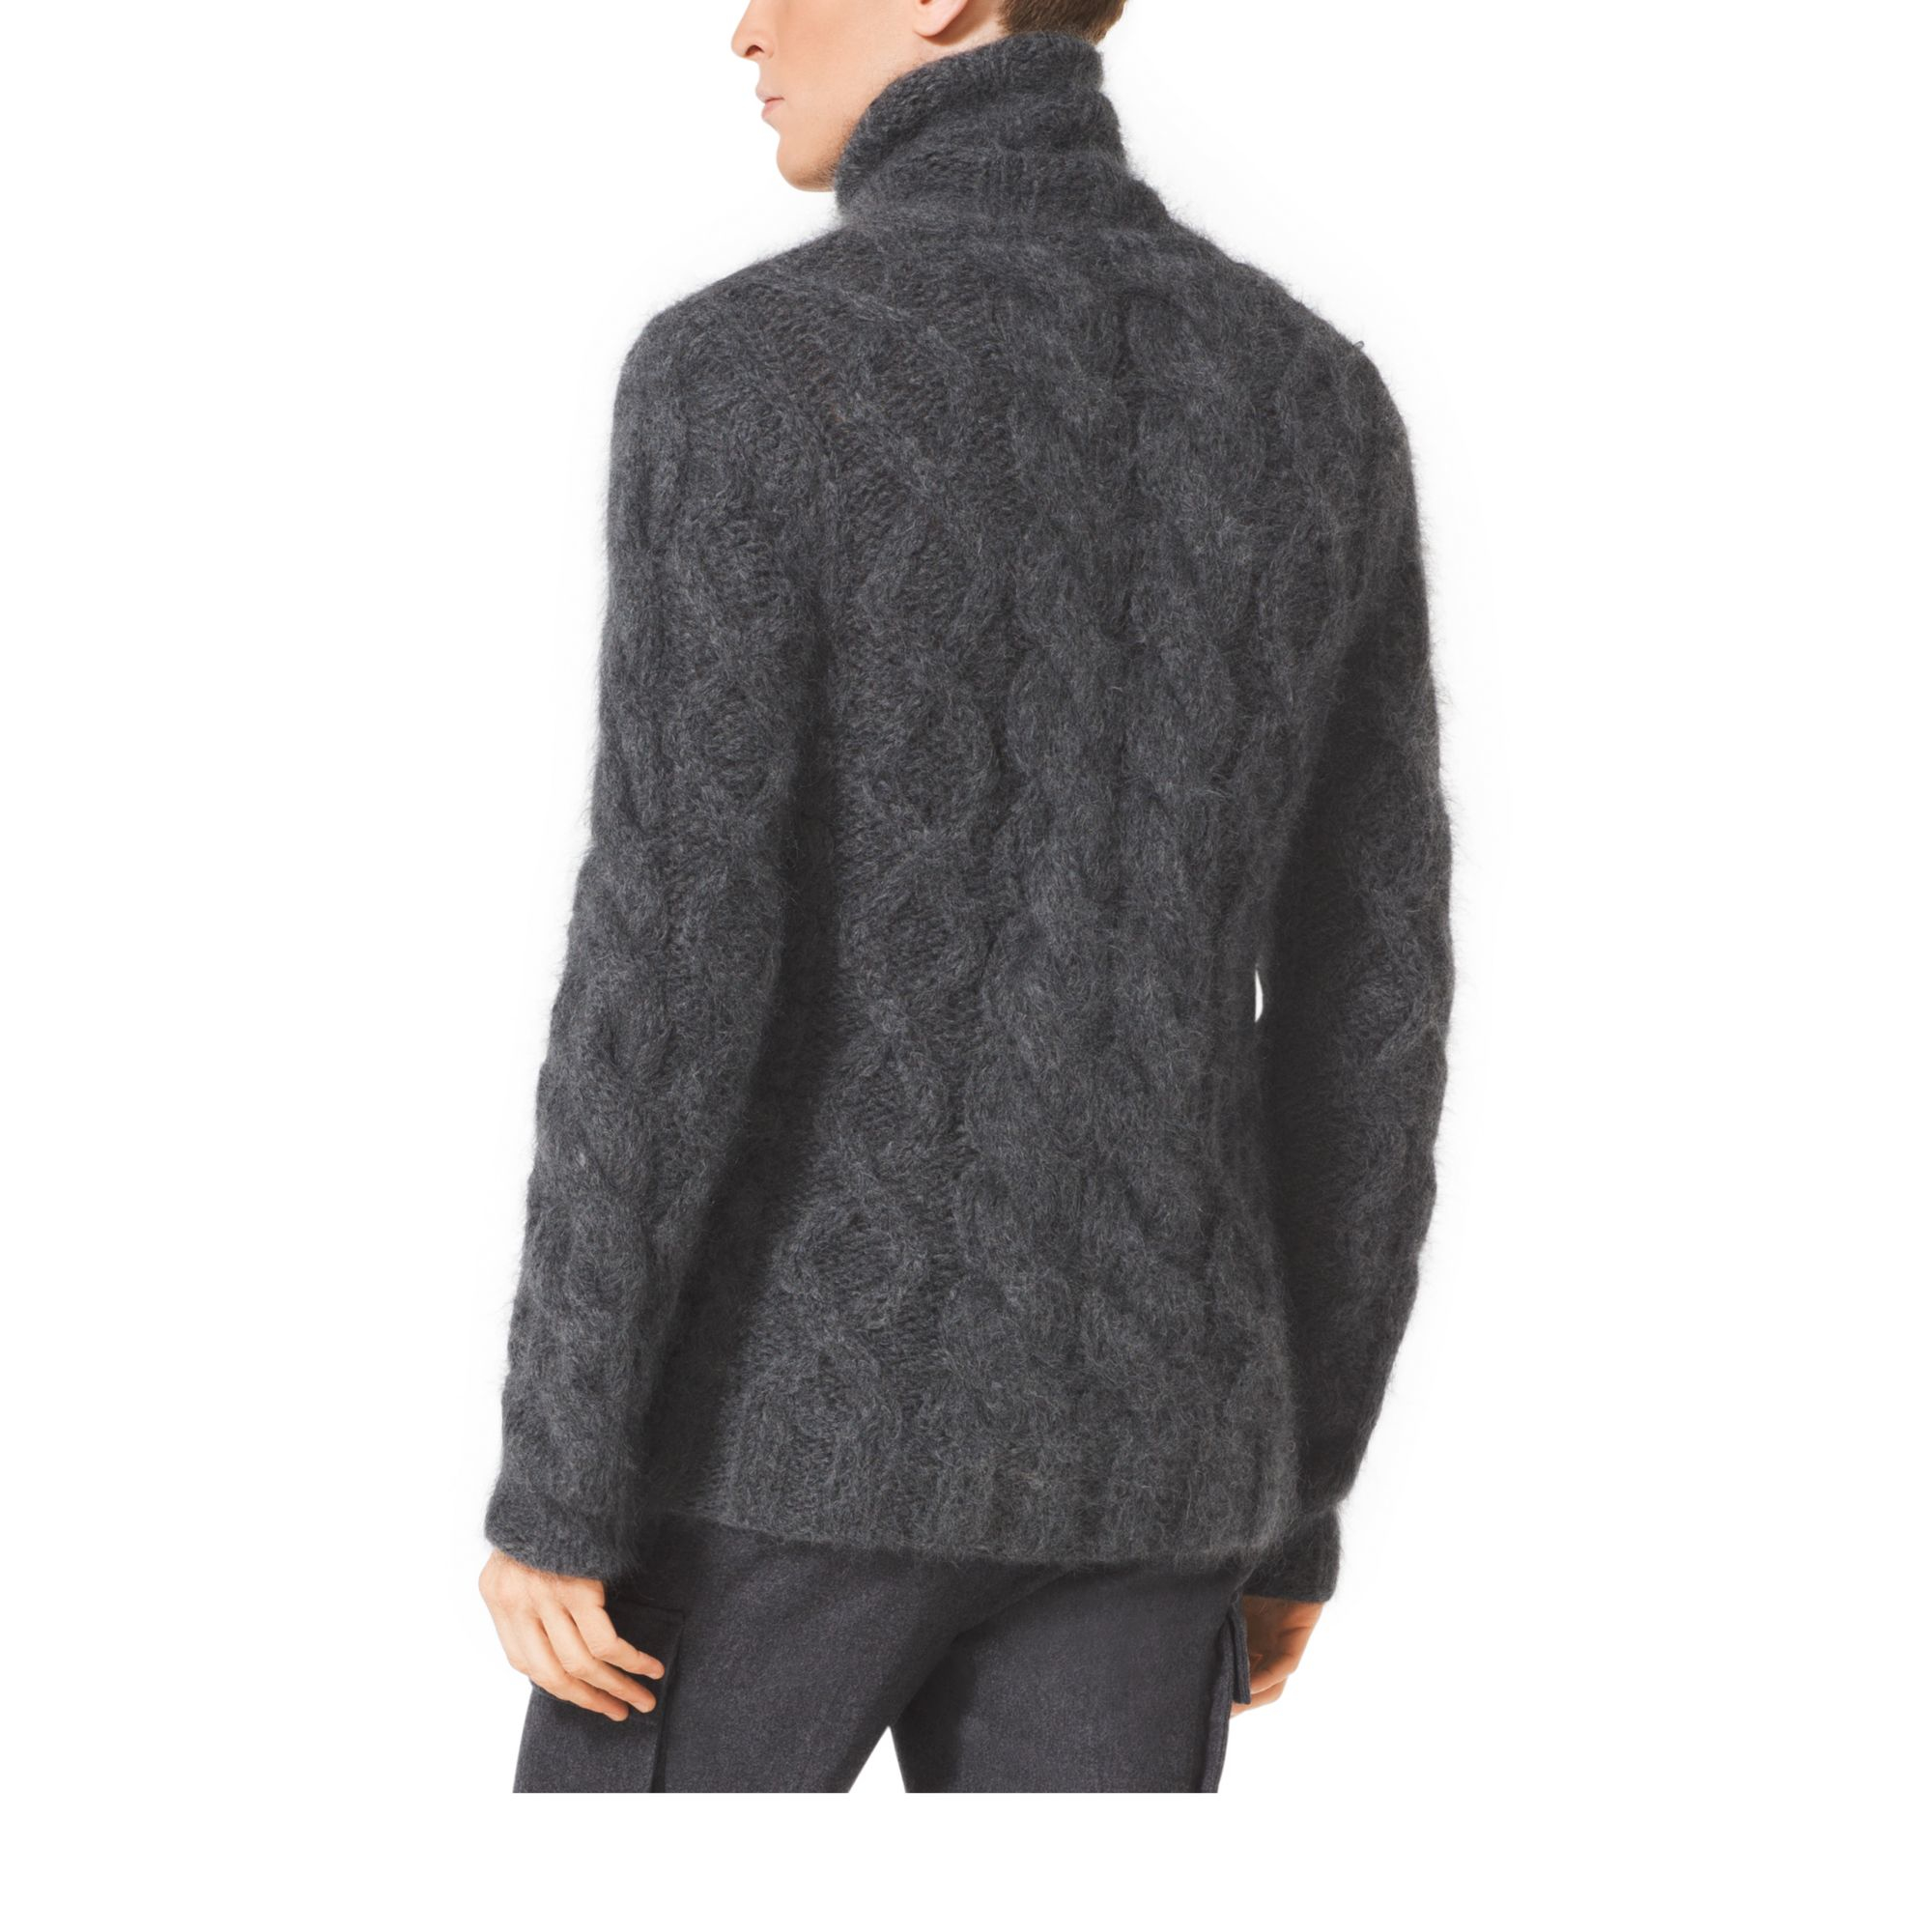 michael kors cable knit mohair sweater in gray for men lyst. Black Bedroom Furniture Sets. Home Design Ideas